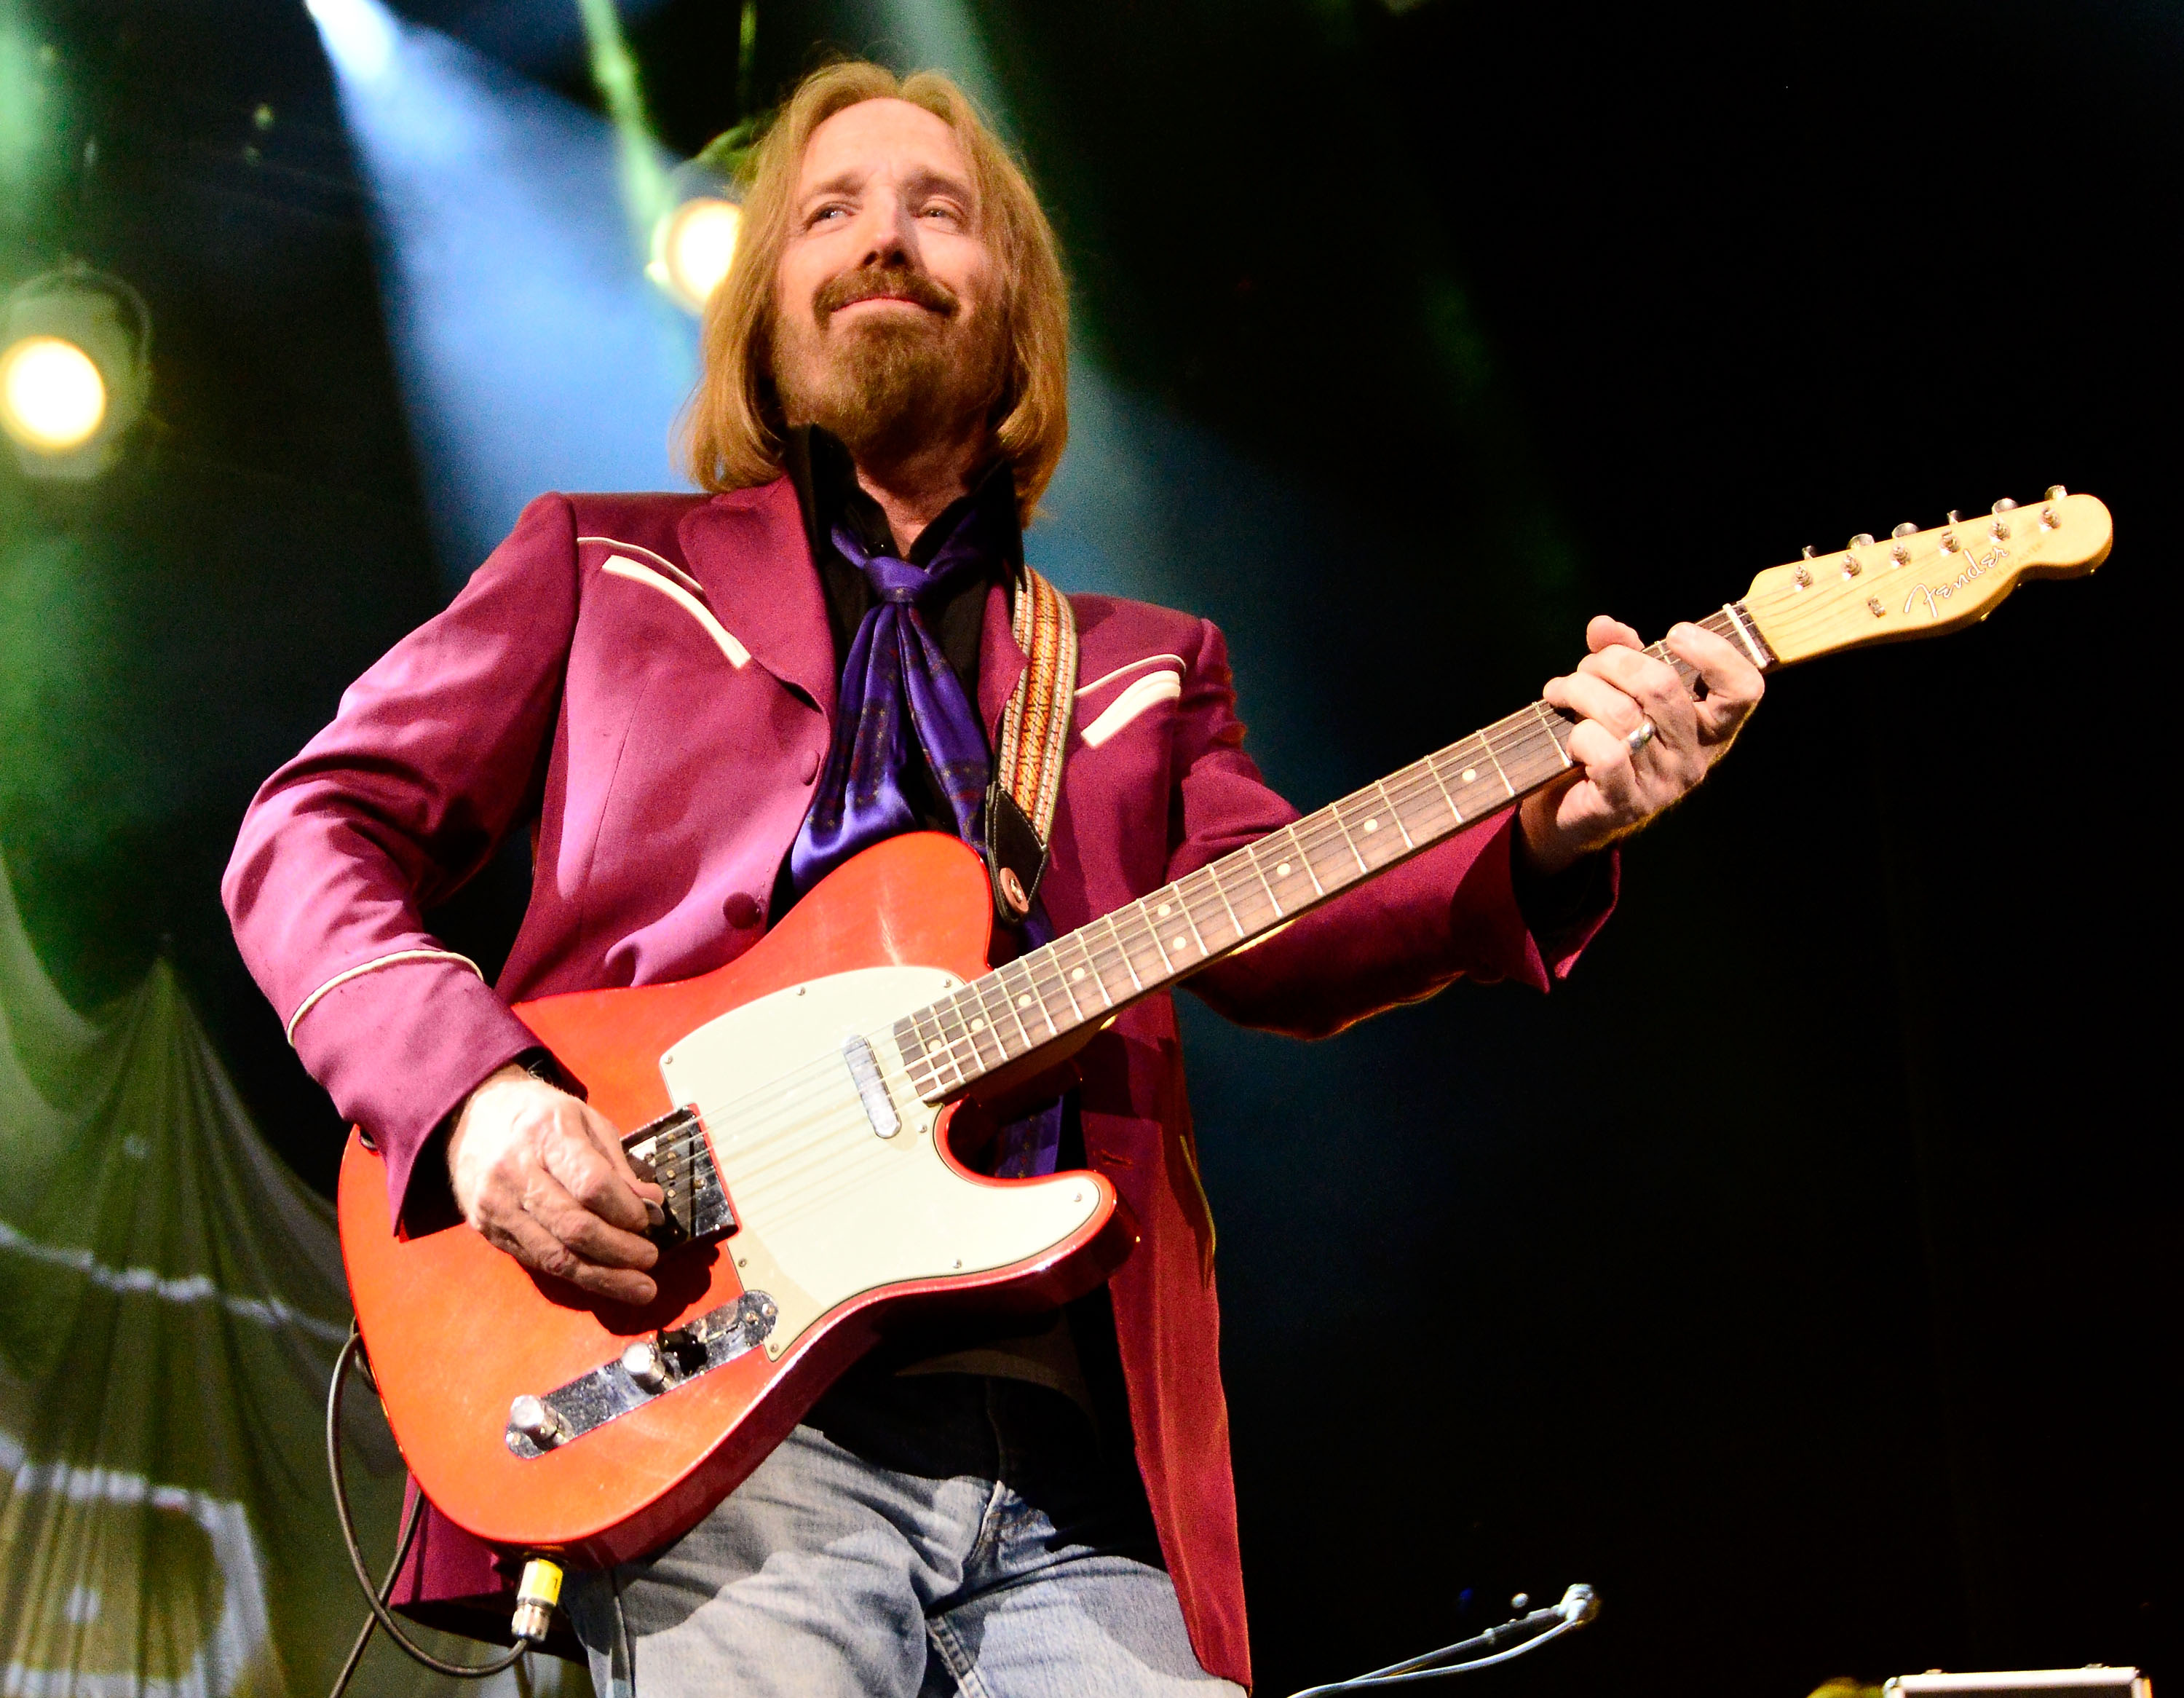 Tom Petty says no hard feelings on Sam Smith song